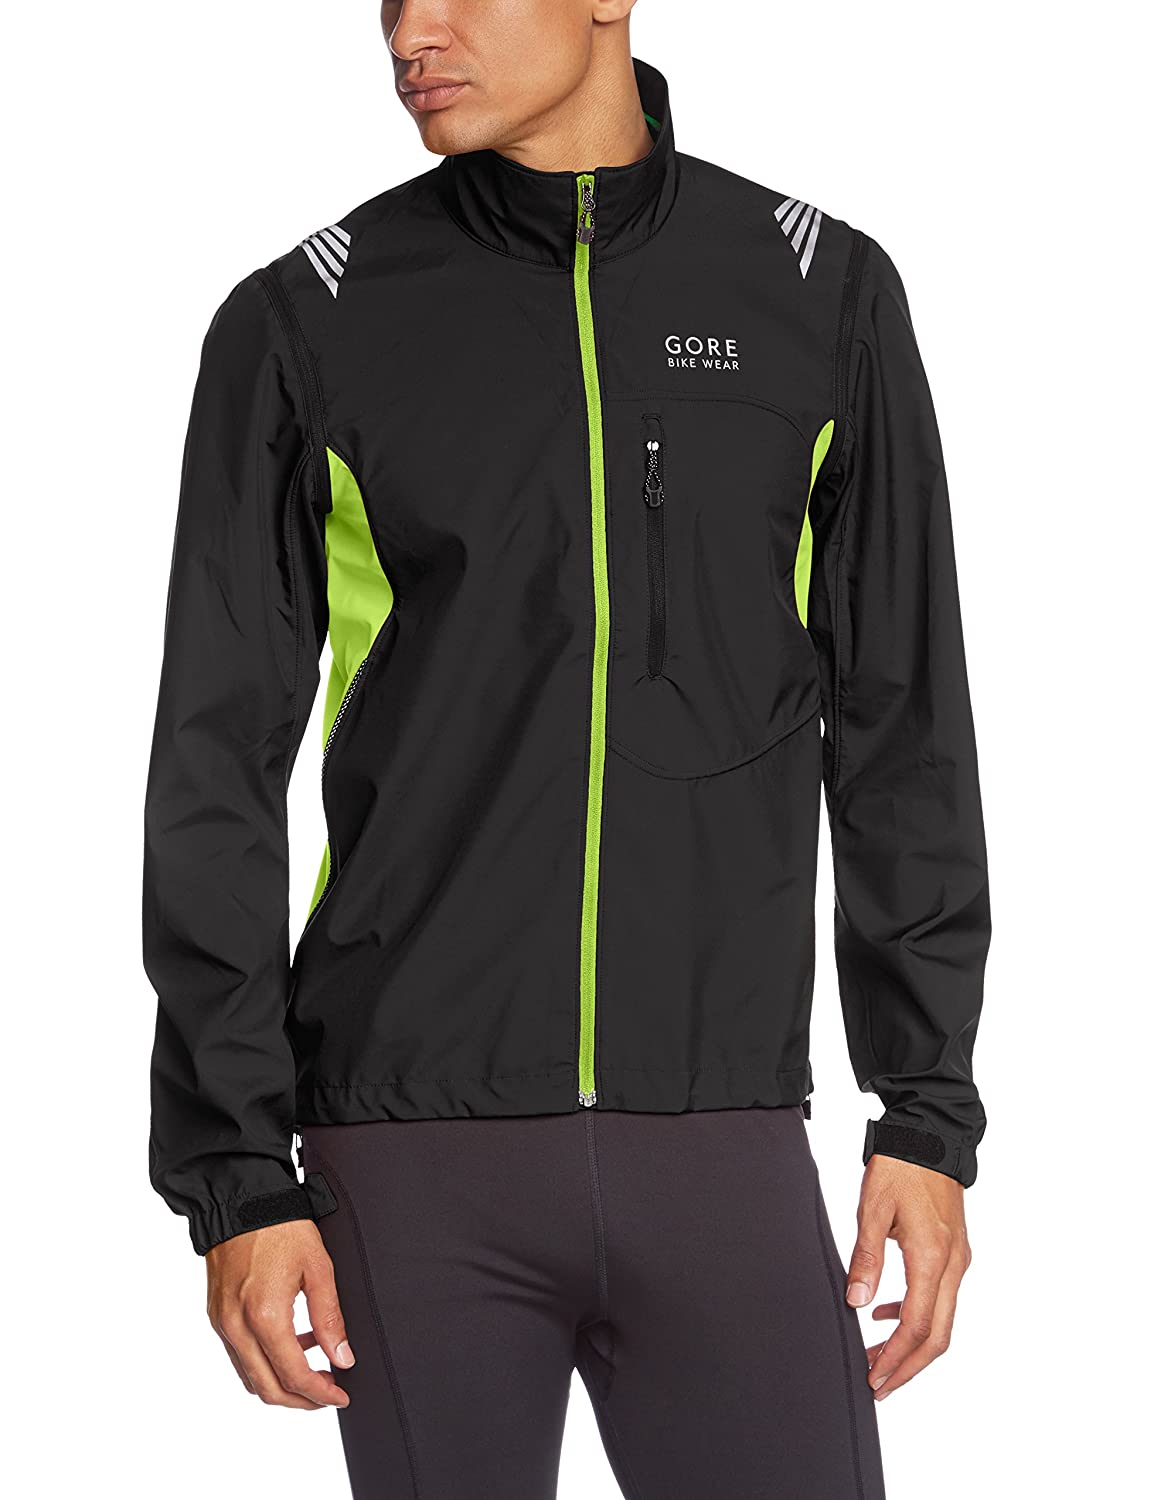 GORE BIKE WEAR Herren winddichte Fahrradjacke, WINDSTOPPER Active Shell, Element WS AS Zip-Off, JWAELM jetzt kaufen